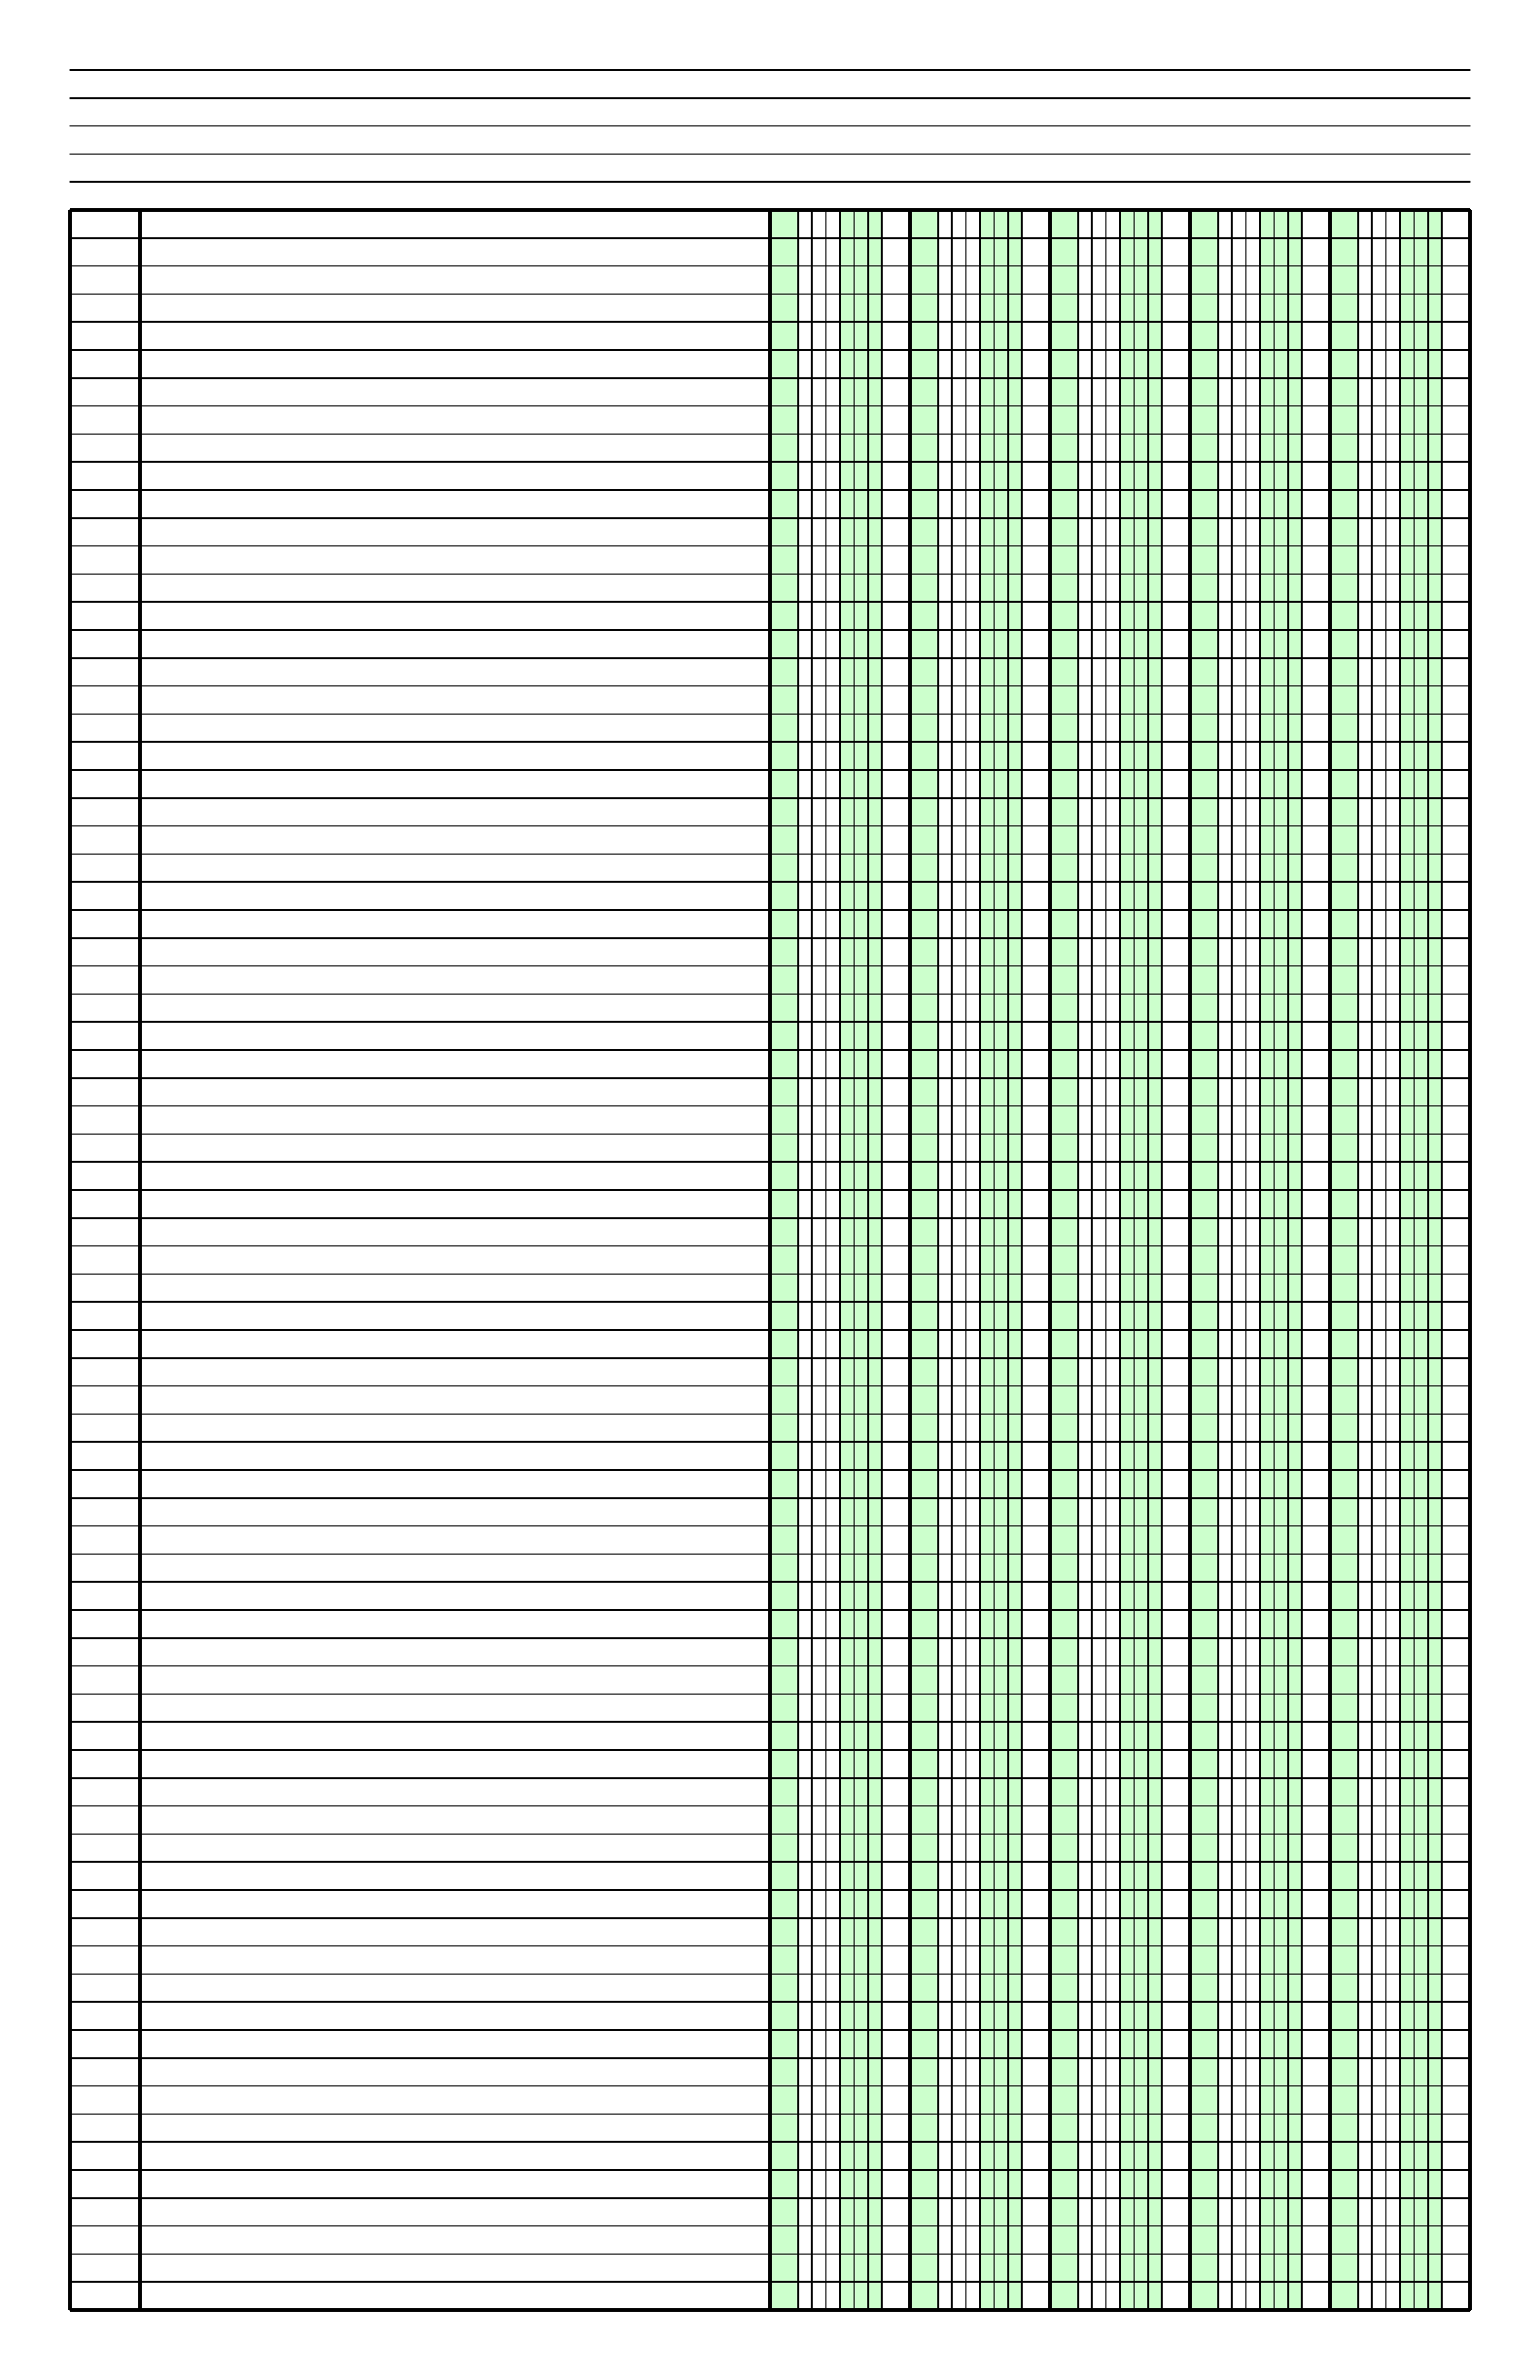 Columnar Paper With Five Columns On Ledger Sized Paper In